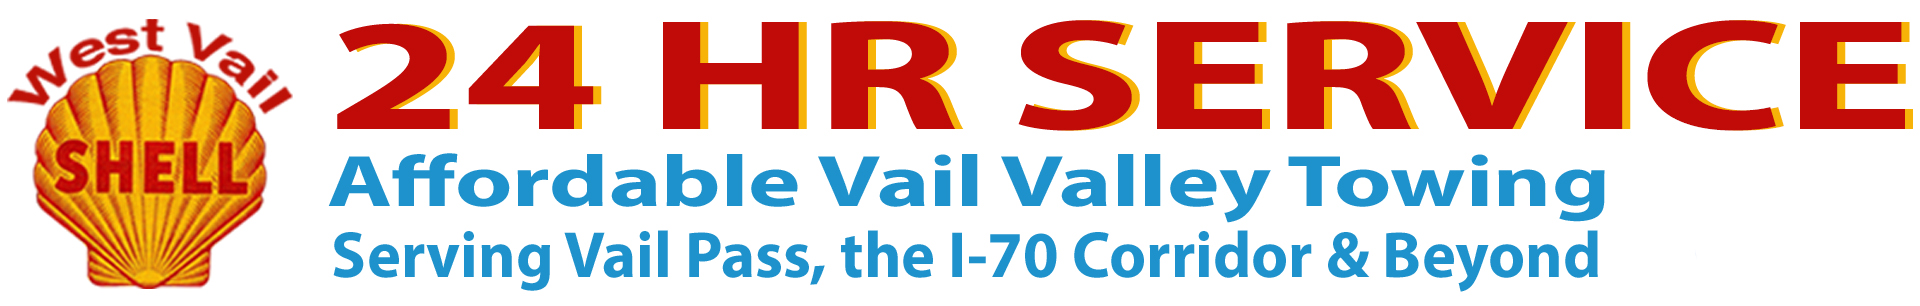 West Vail Shell  | Towing & Roadside Assistance Logo